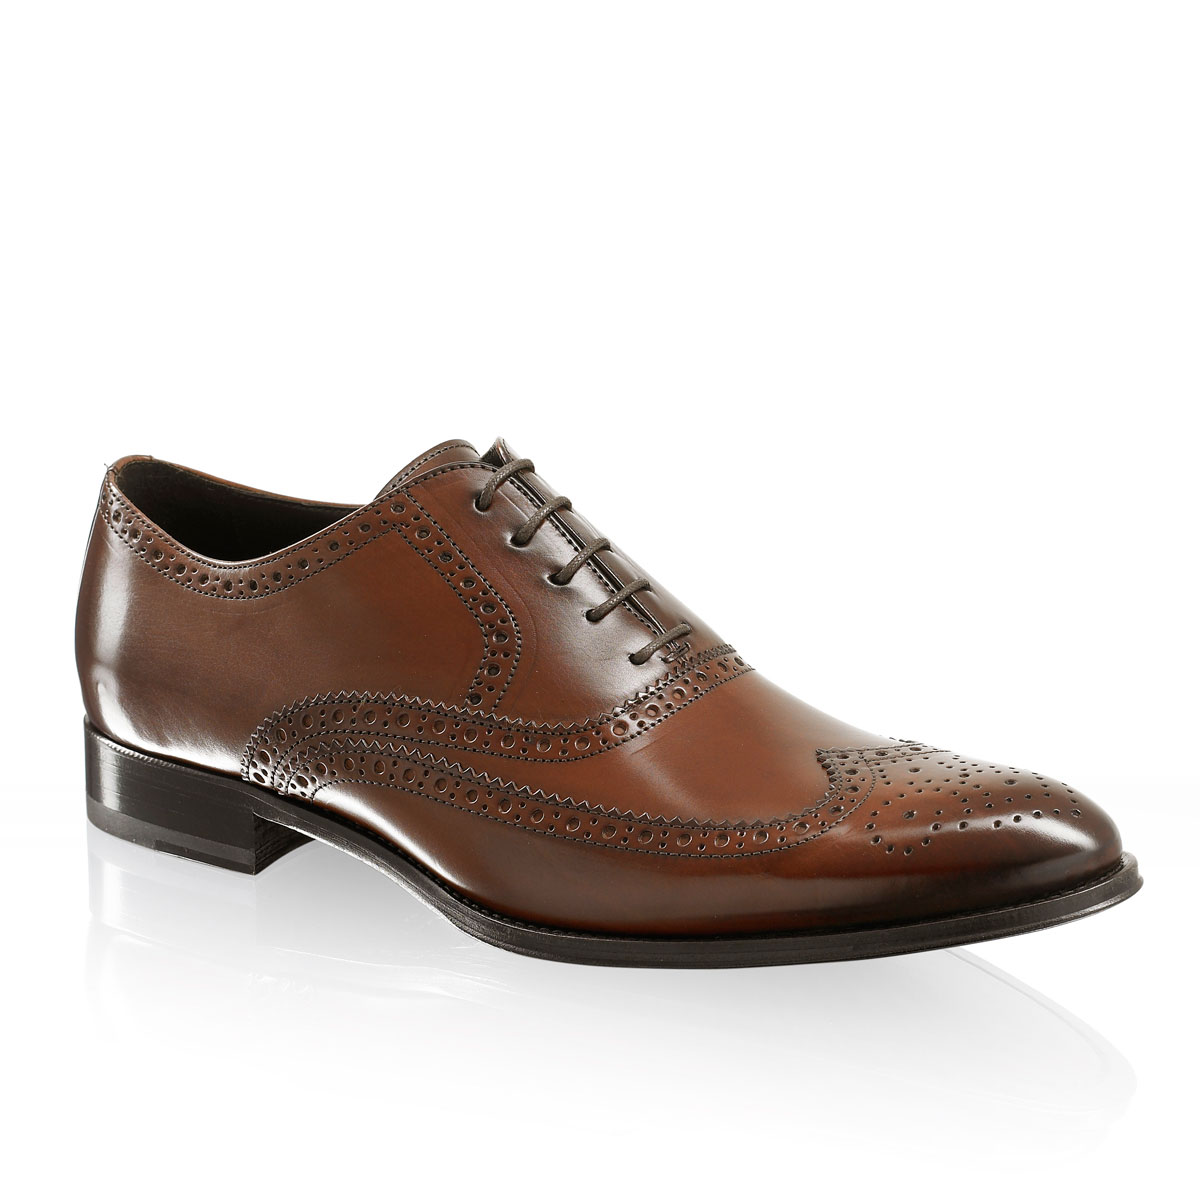 Russell and Bromley OAK Antiqued Brogue Oxford